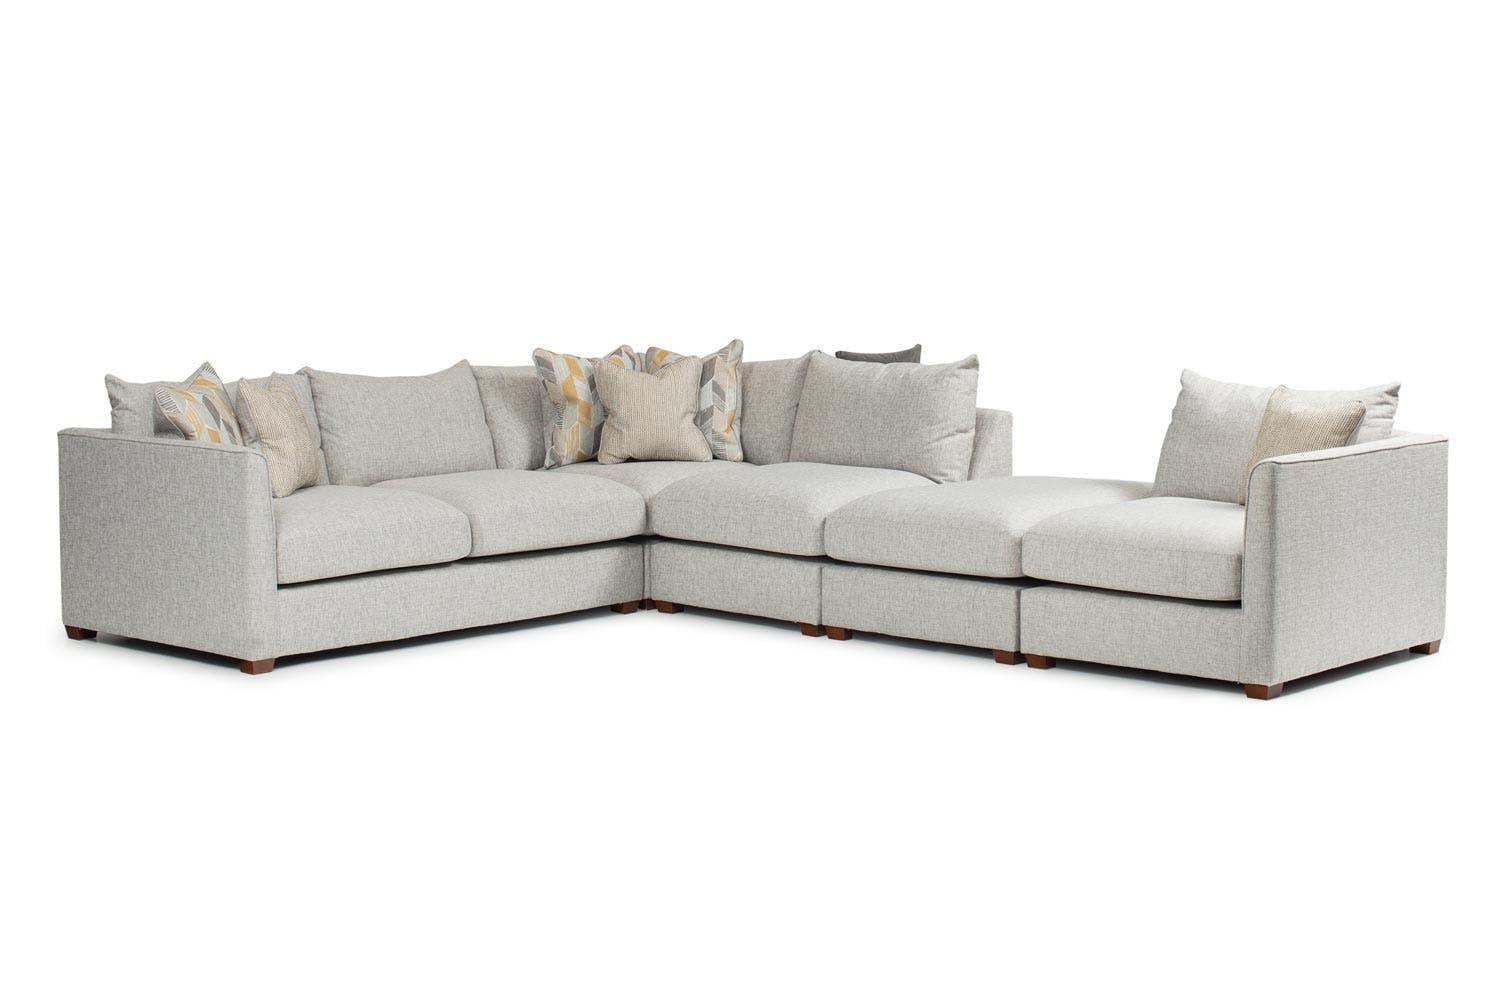 Corner Sofas Your Sofa Superstore Harvey Norman Ireland